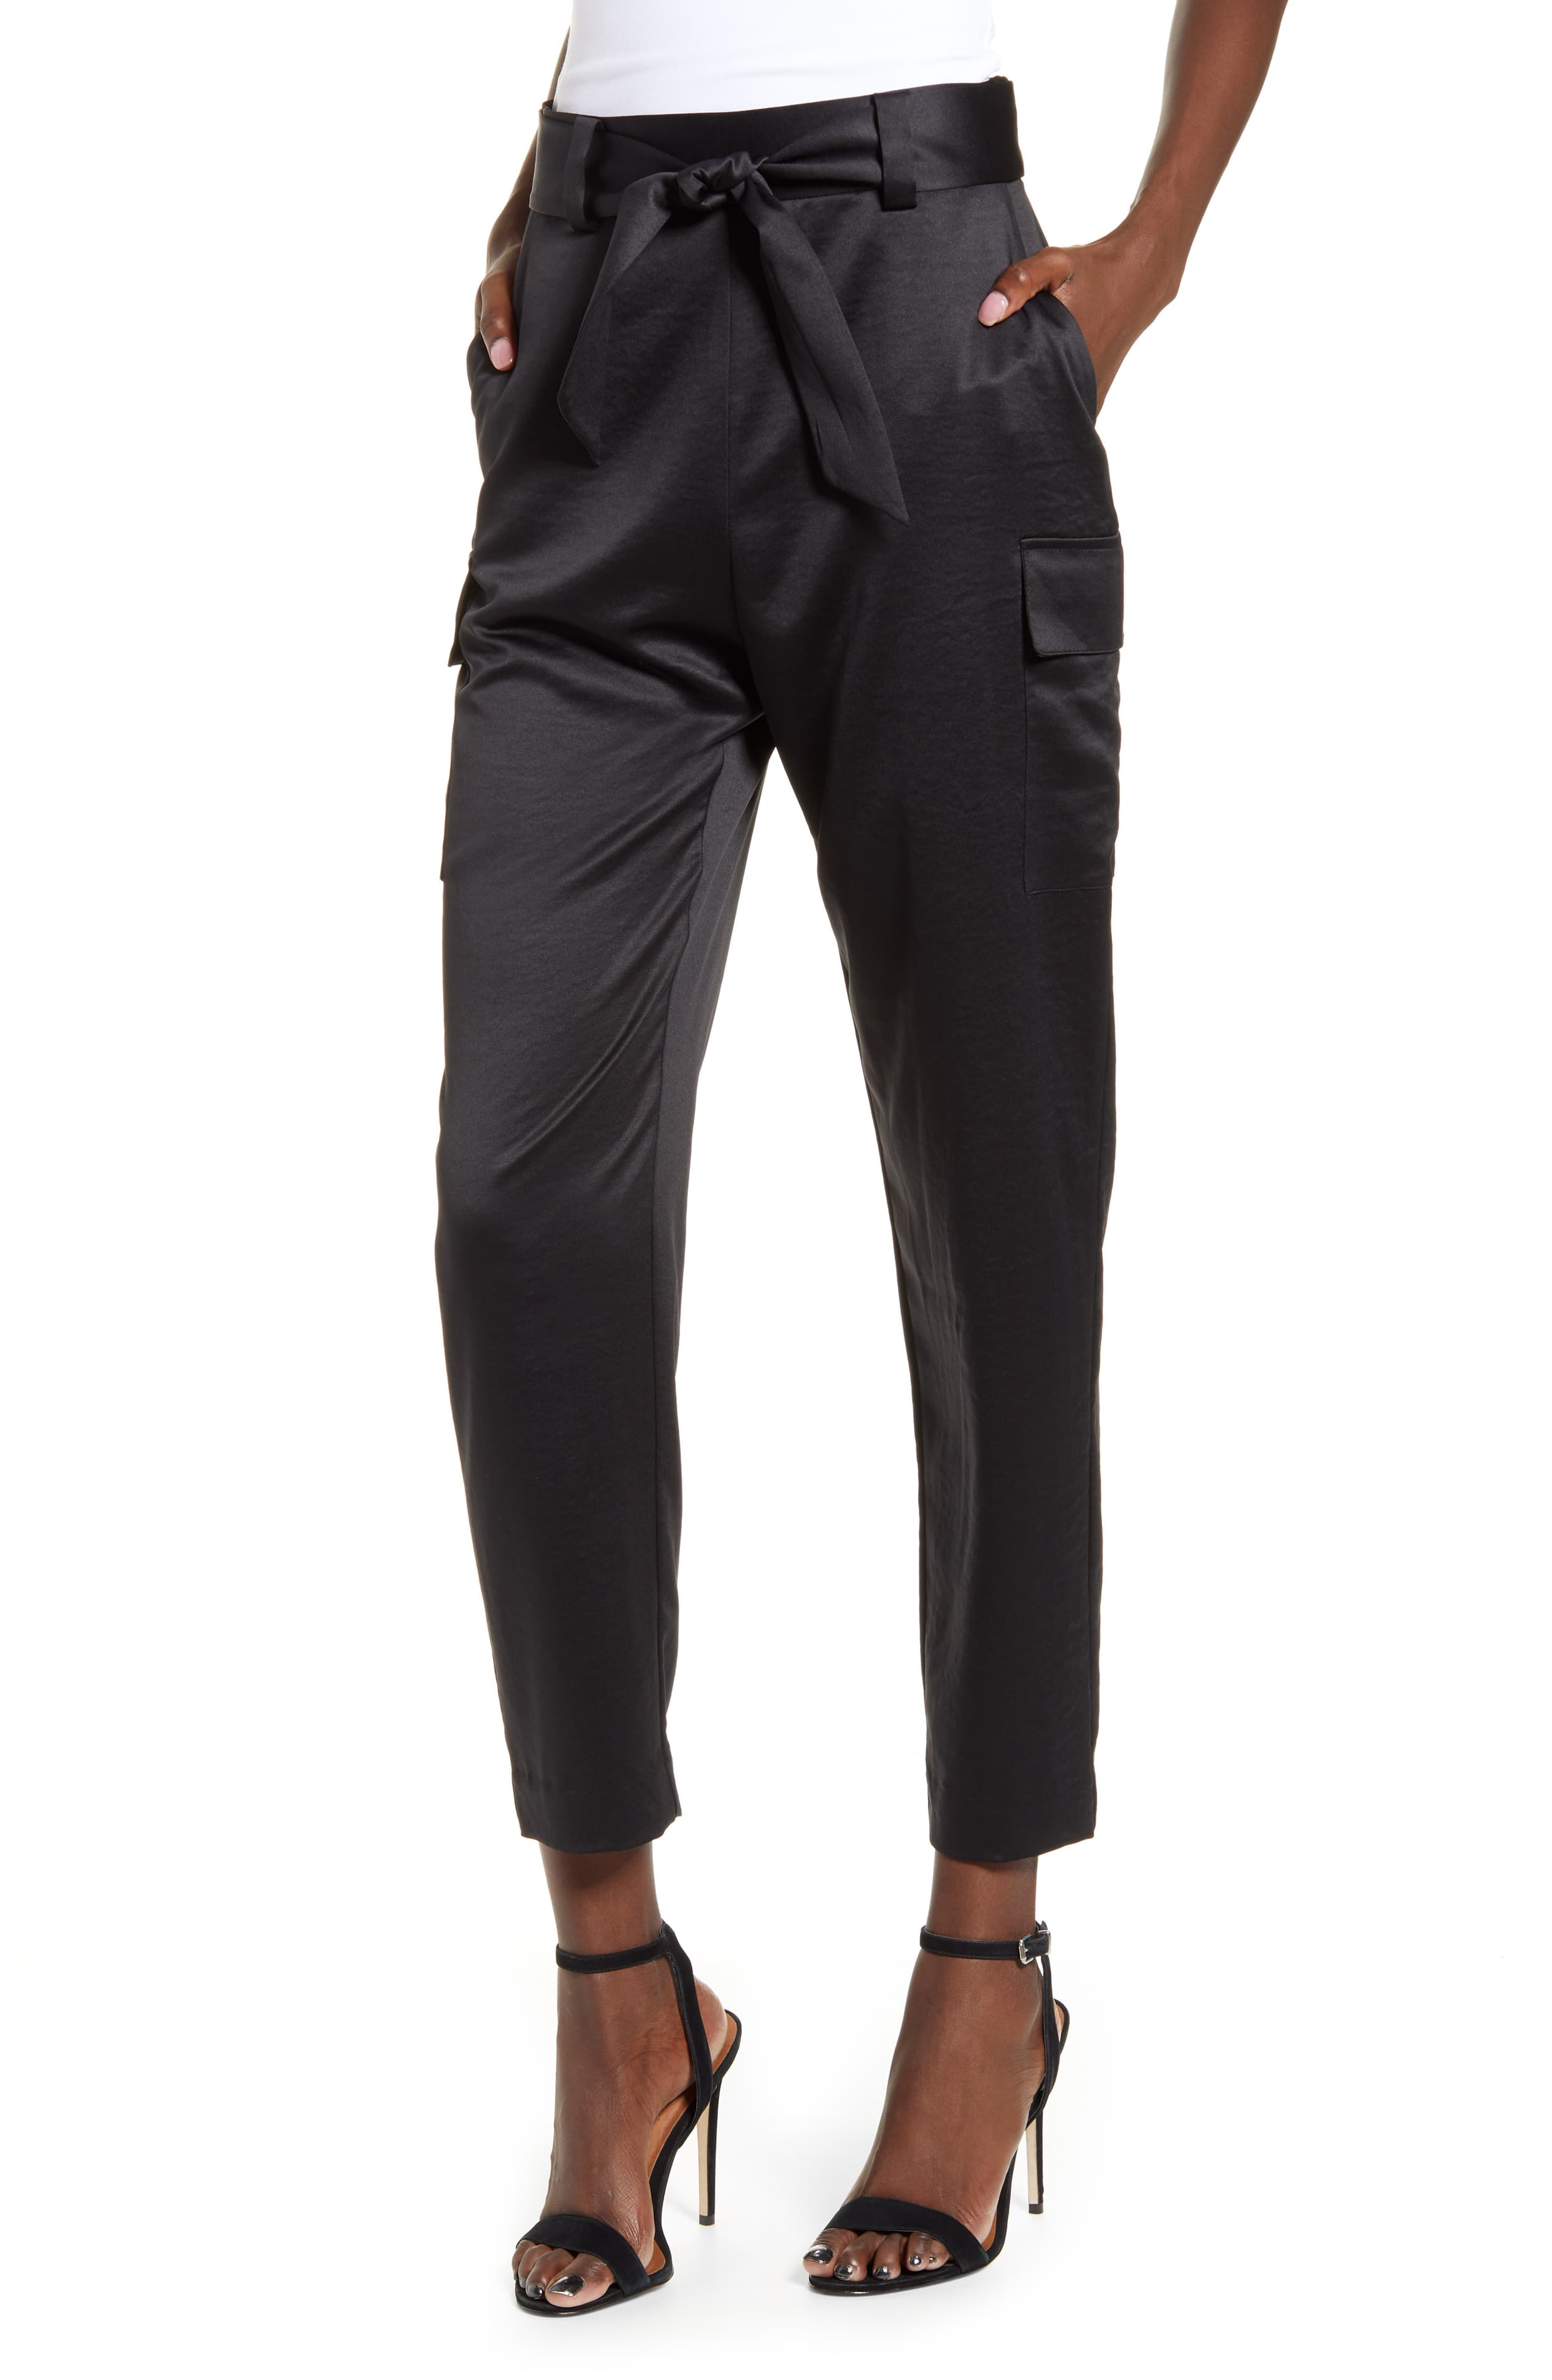 "<p>Smooth satin elevates a pair of versatile cargo pants with tapered legs and a paperbag-style tie waist. $59</p><p><a  href=""https://shop.nordstrom.com/s/leith-satin-cargo-pants/5372441/full?origin=category-personalizedsort&breadcrumb=Home%2FWomen%2FShop%20by%20Occasion%2FNight%20Out&color=black"" target=""_blank"" title=""https://shop.nordstrom.com/s/leith-satin-cargo-pants/5372441/full?origin=category-personalizedsort&breadcrumb=Home%2FWomen%2FShop%20by%20Occasion%2FNight%20Out&color=black"">Shop it{&nbsp;}</a></p><p>(Image: Nordstrom){&nbsp;}</p>"